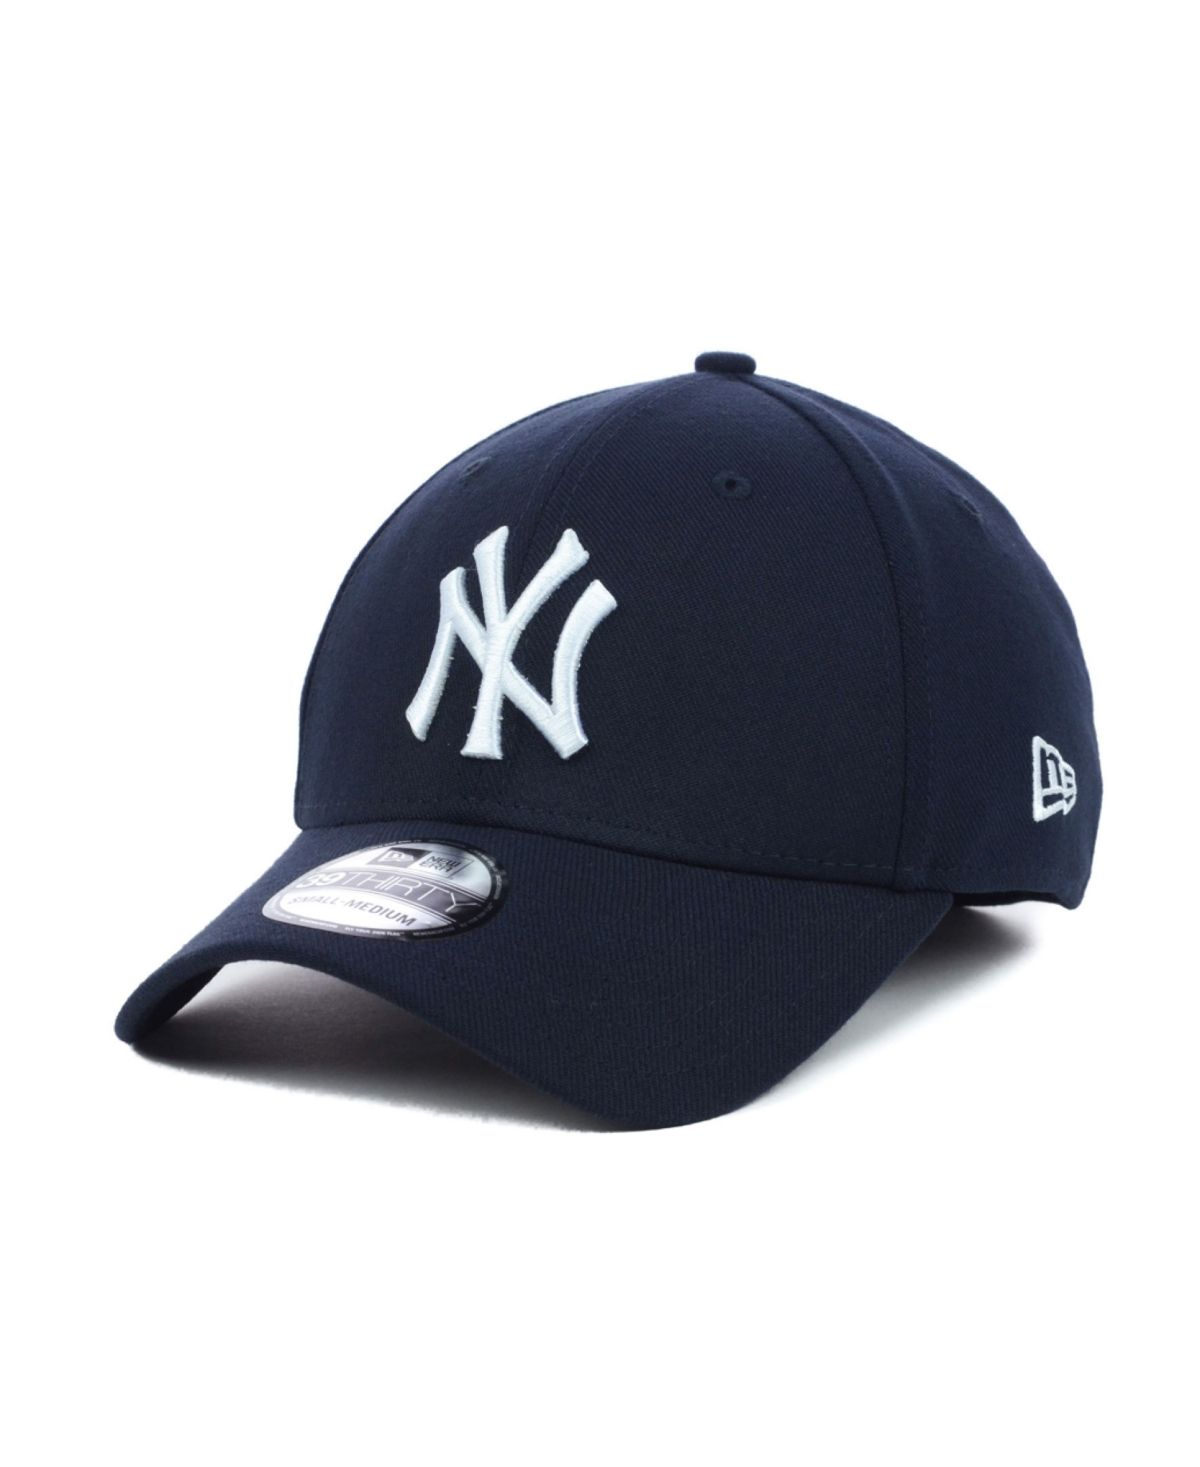 New Era New York Yankees Mlb Team Classic 39thirty Stretch Fitted Cap Reviews Sports Fan Shop By Lids Men Macy S Yankees Hat Hats For Men Yankee Hat